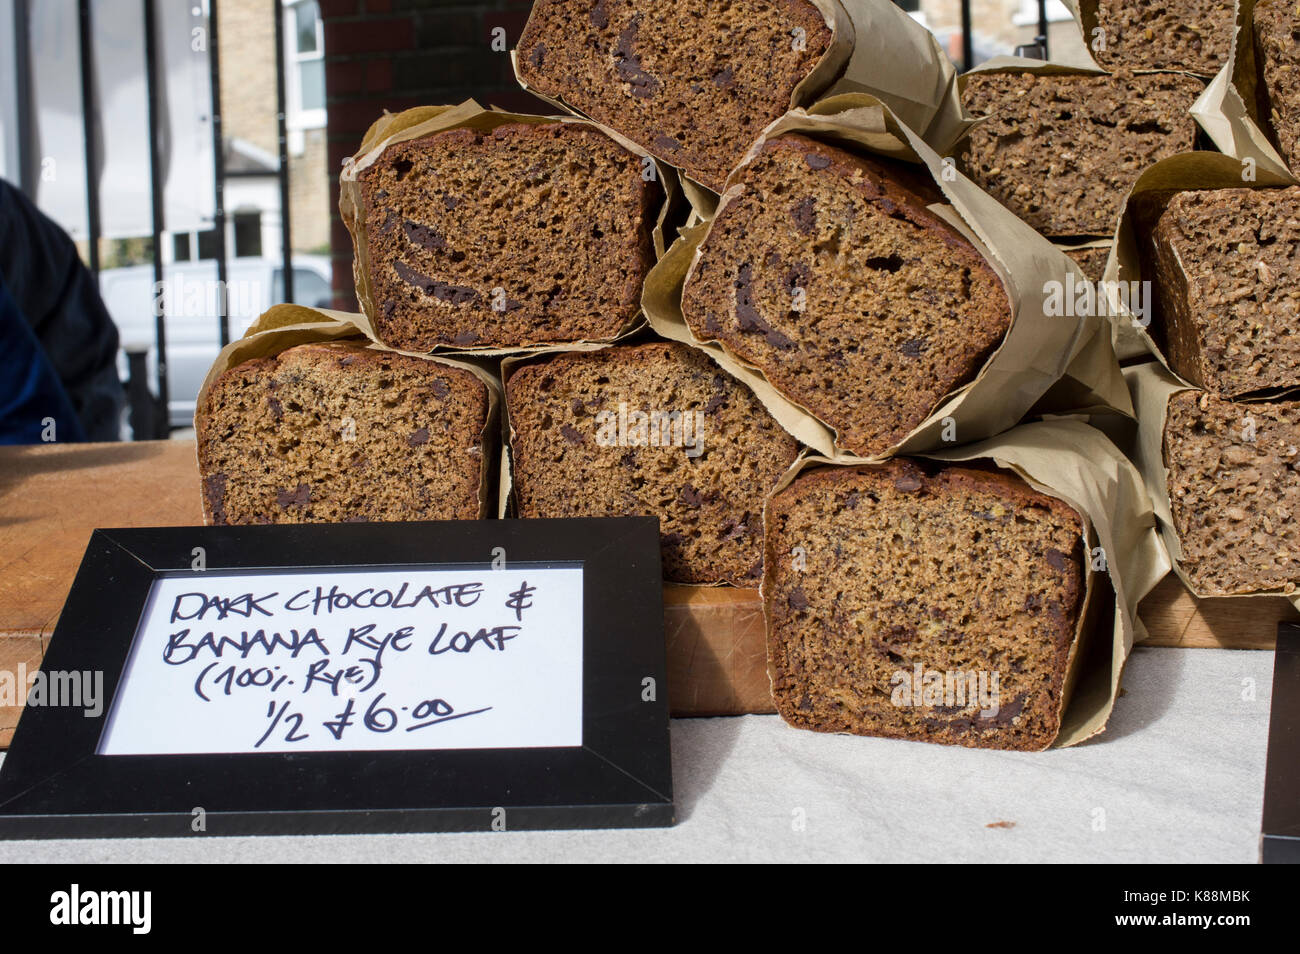 Dark chocolate and banana rye loaf breads in an outdoor market in London - Stock Image